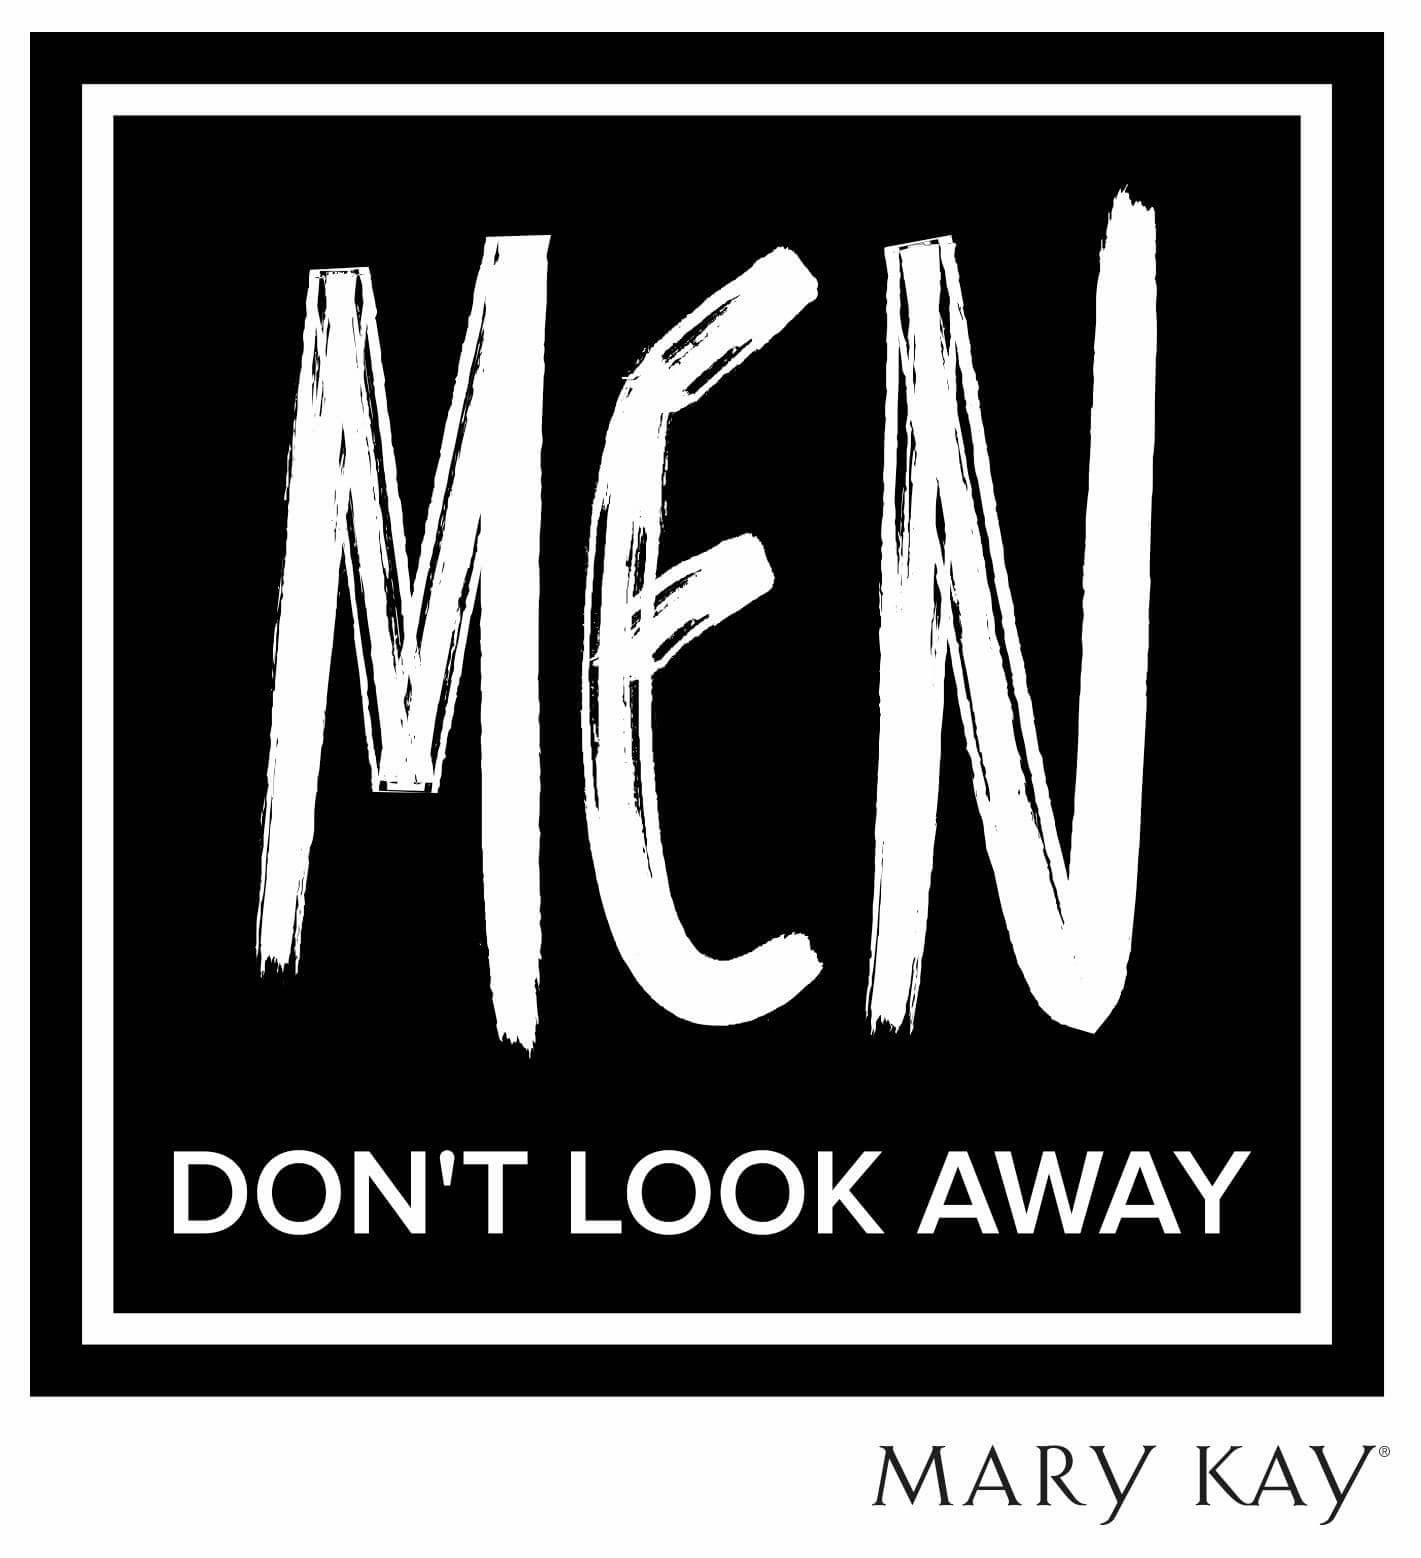 37fc7ffa6 Mary Kay Inc. Hosts Inaugural Men Don't Look Away Summit to Engage More Men  in Efforts to End Domestic Violence | 3BL Media